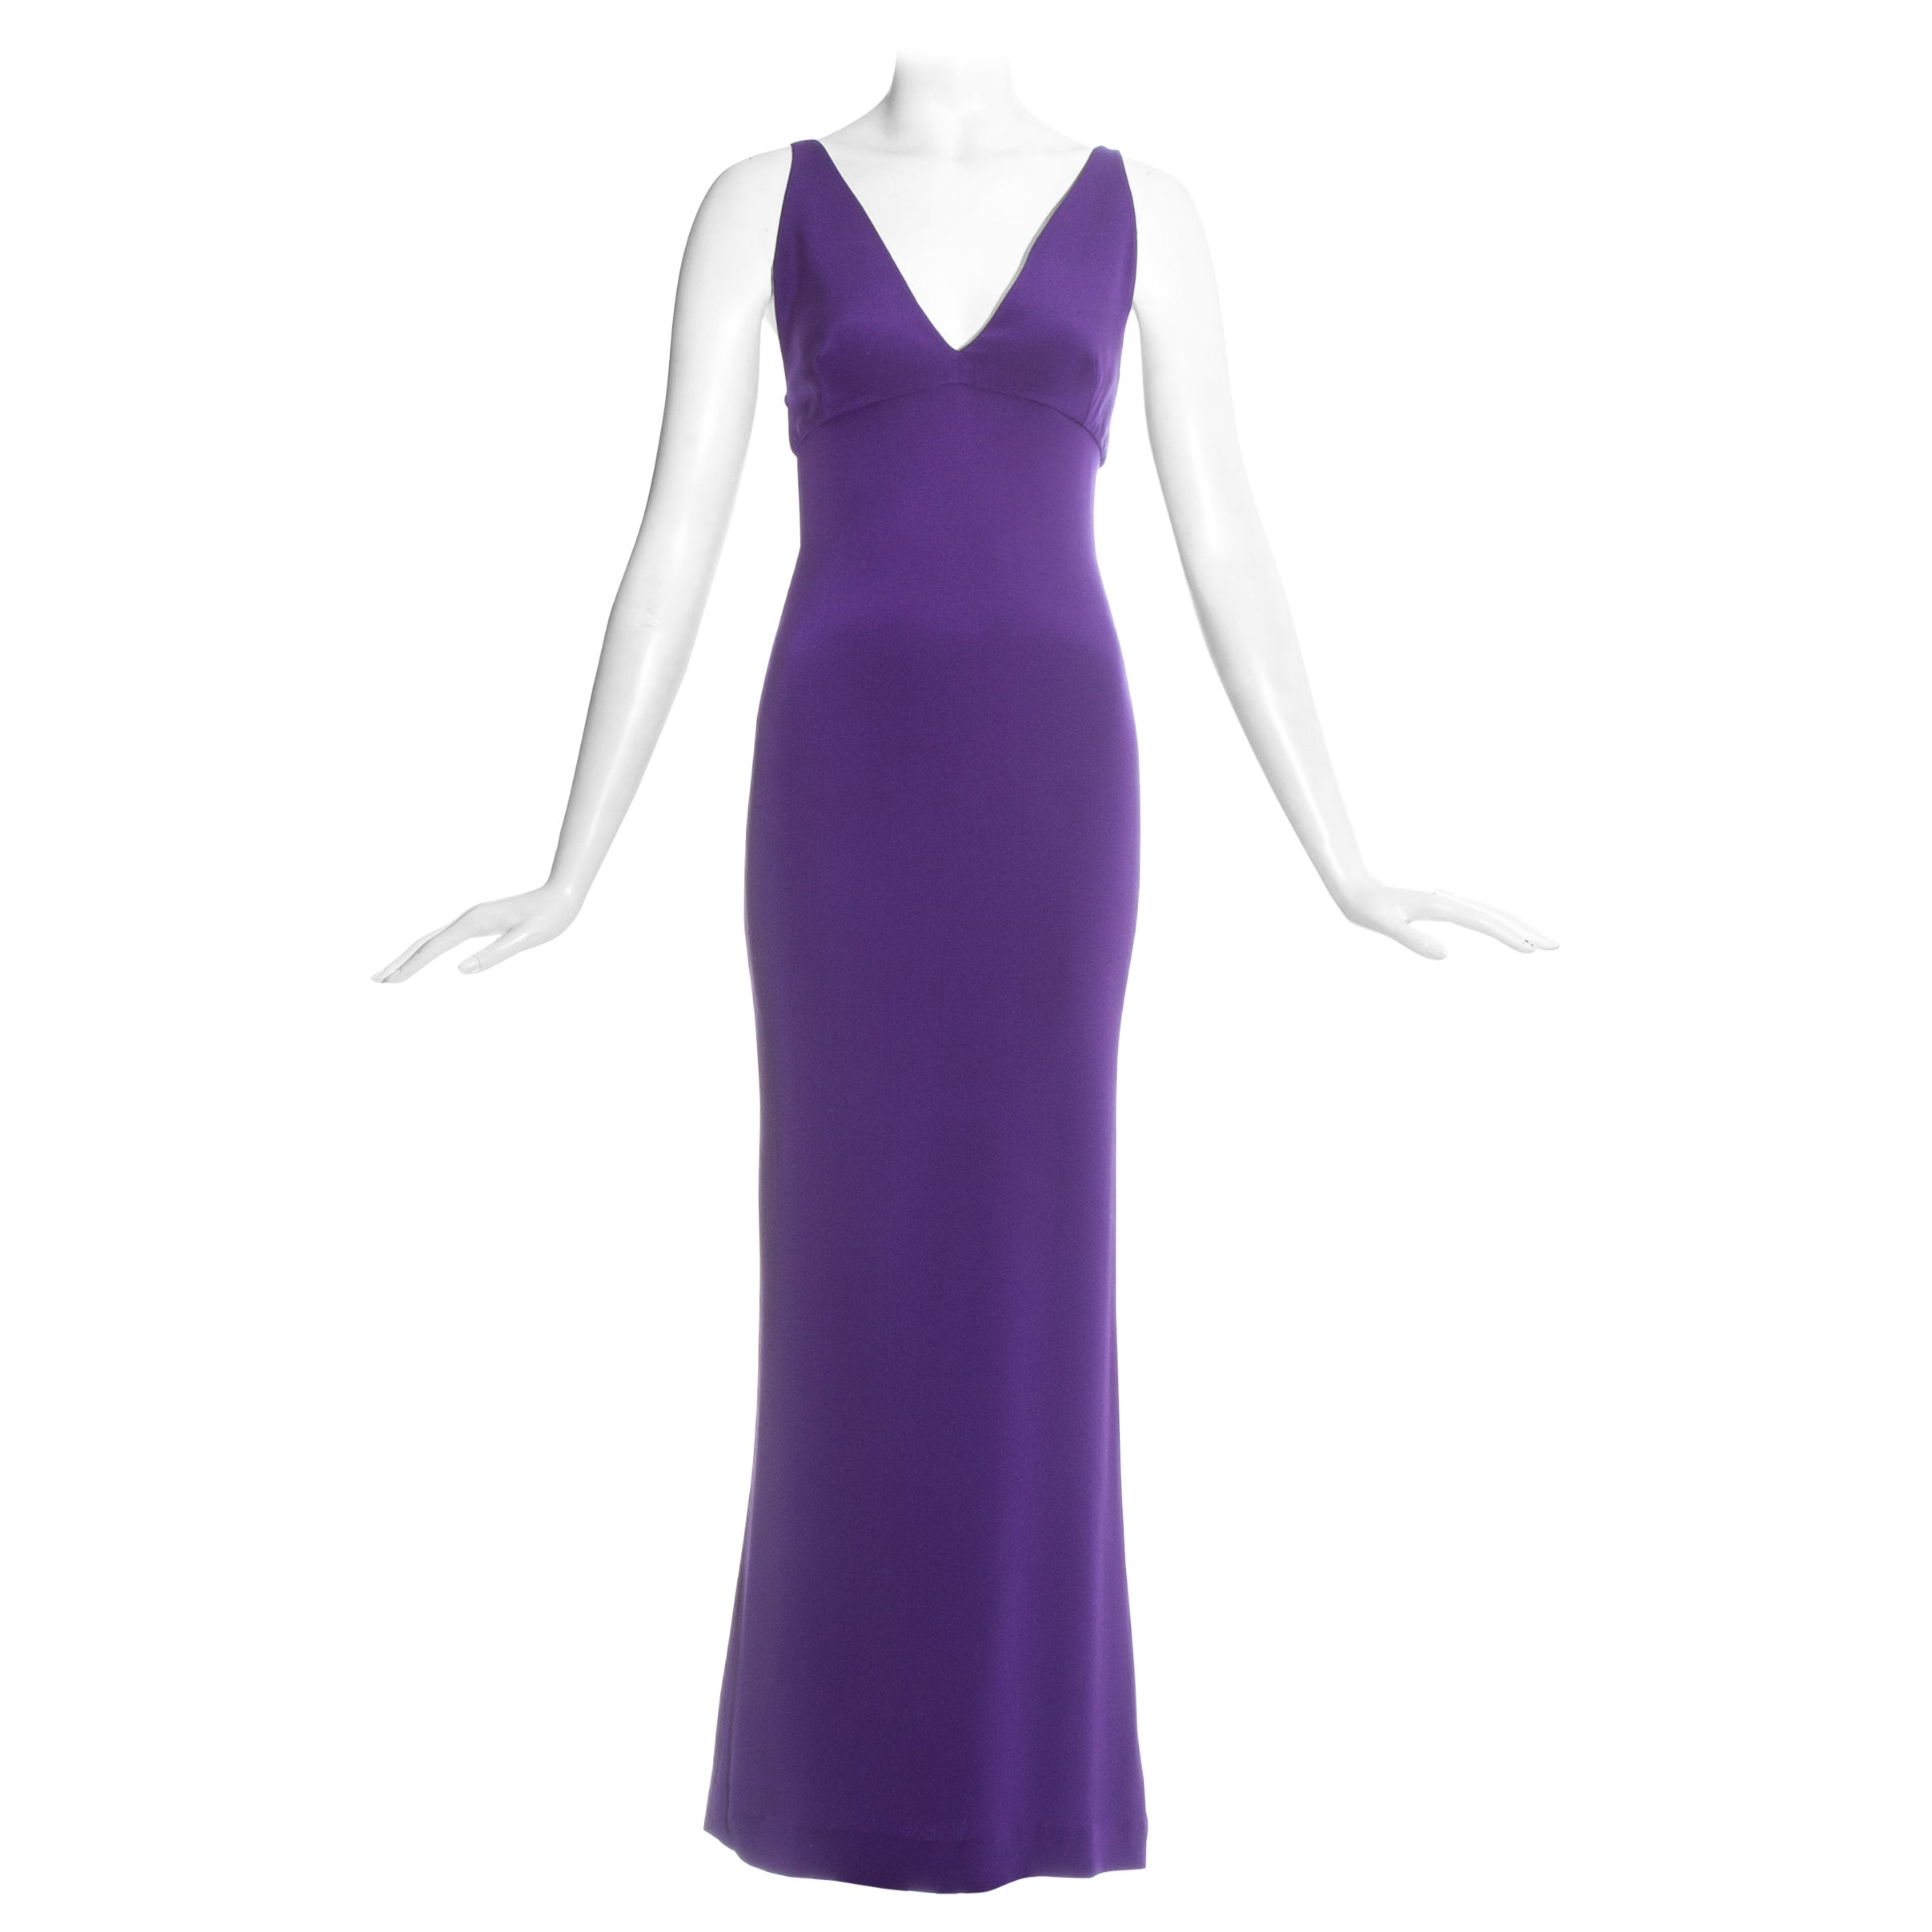 Dolce & Gabbana purple silk evening maxi dress, c. 1990s